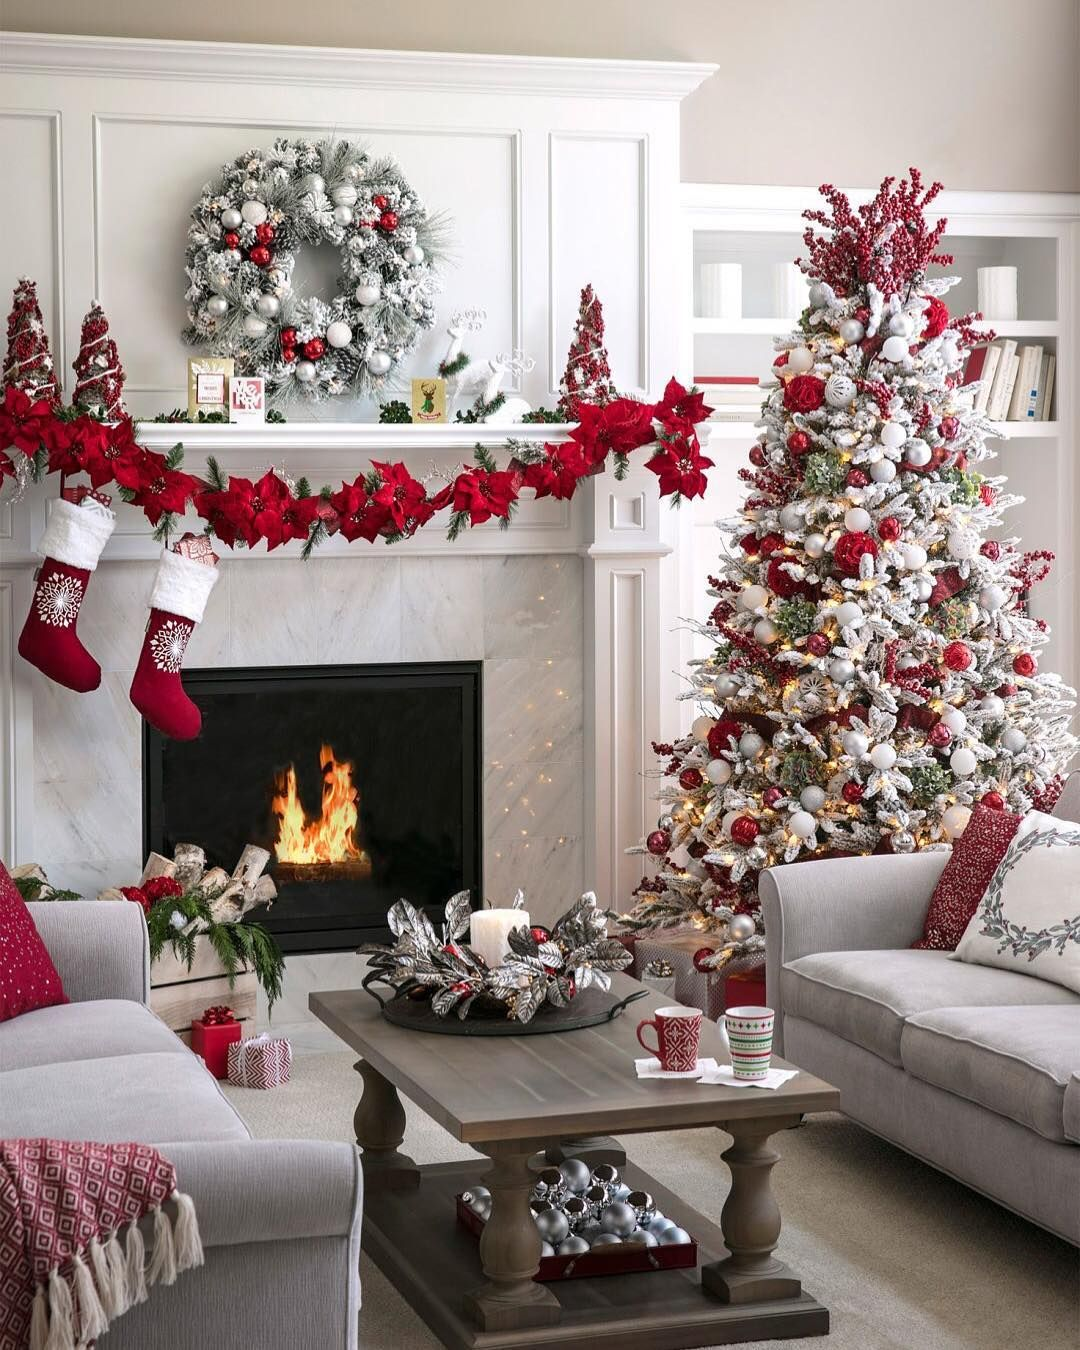 Give Your Frosted Tree A Splash Of Color With Red Silver And Burgundy Ornaments Christmas Decorations Apartment Christmas Apartment Christmas Home